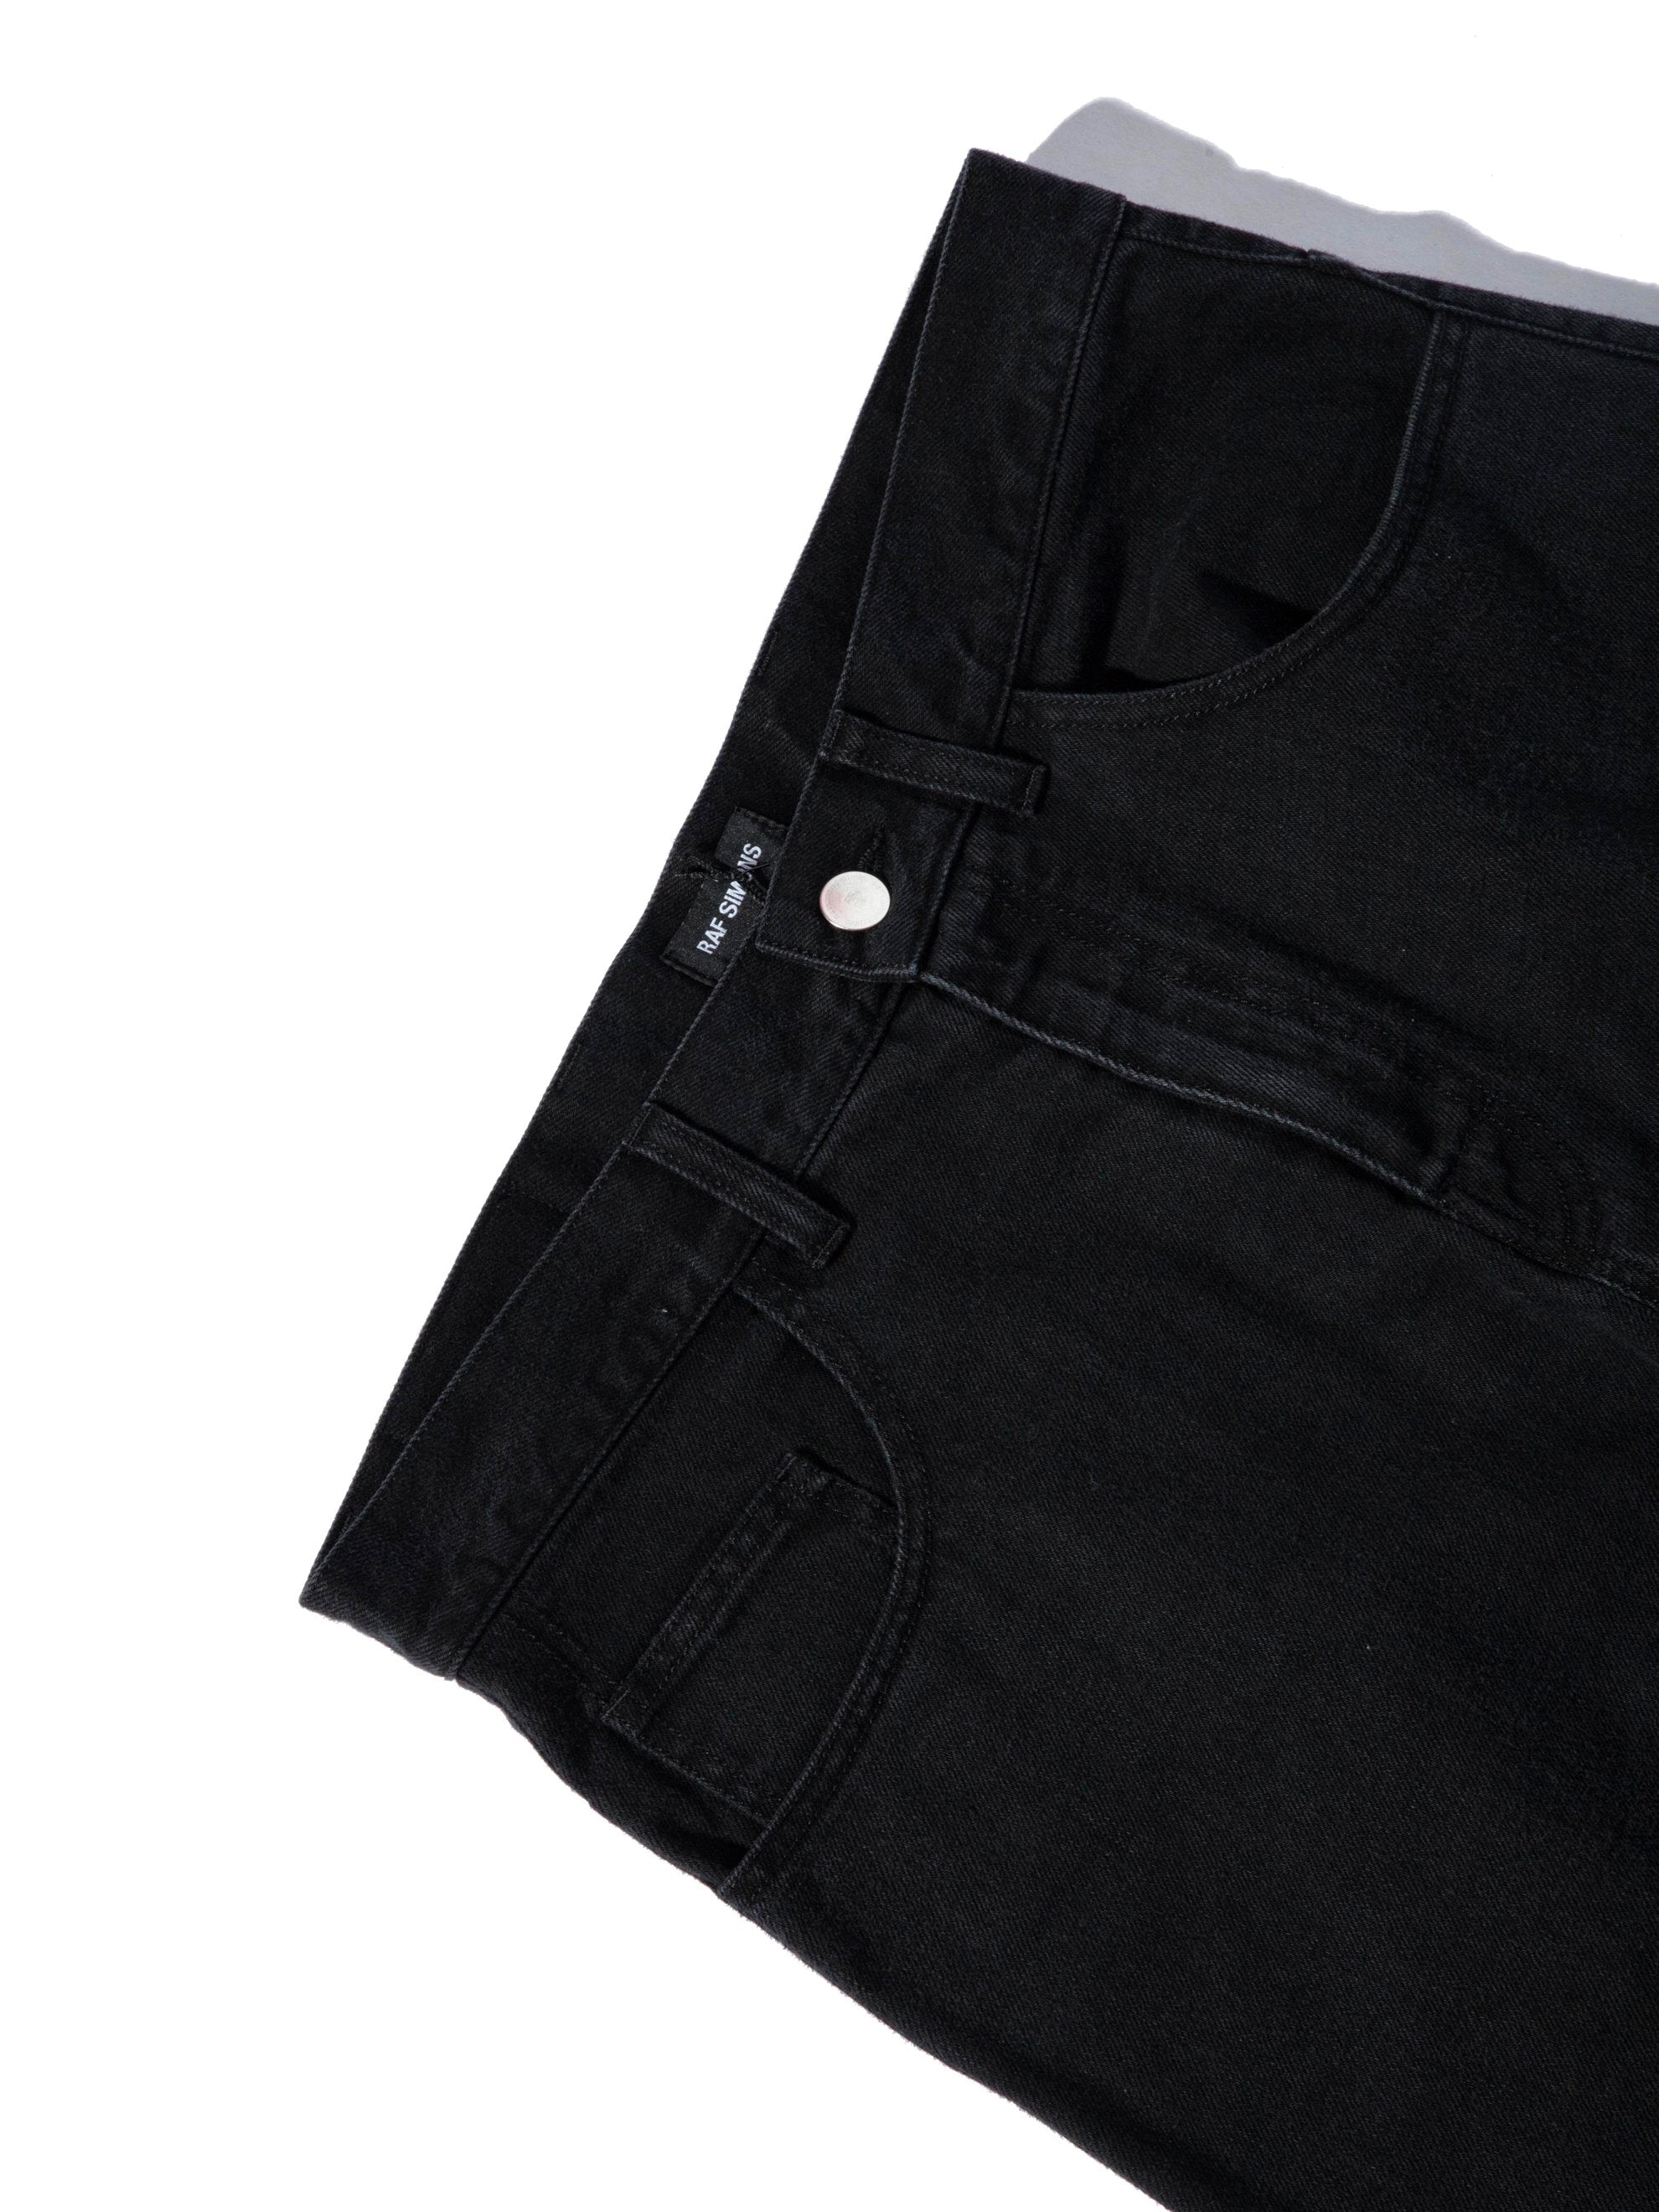 Black Low Crotch Jeans 7